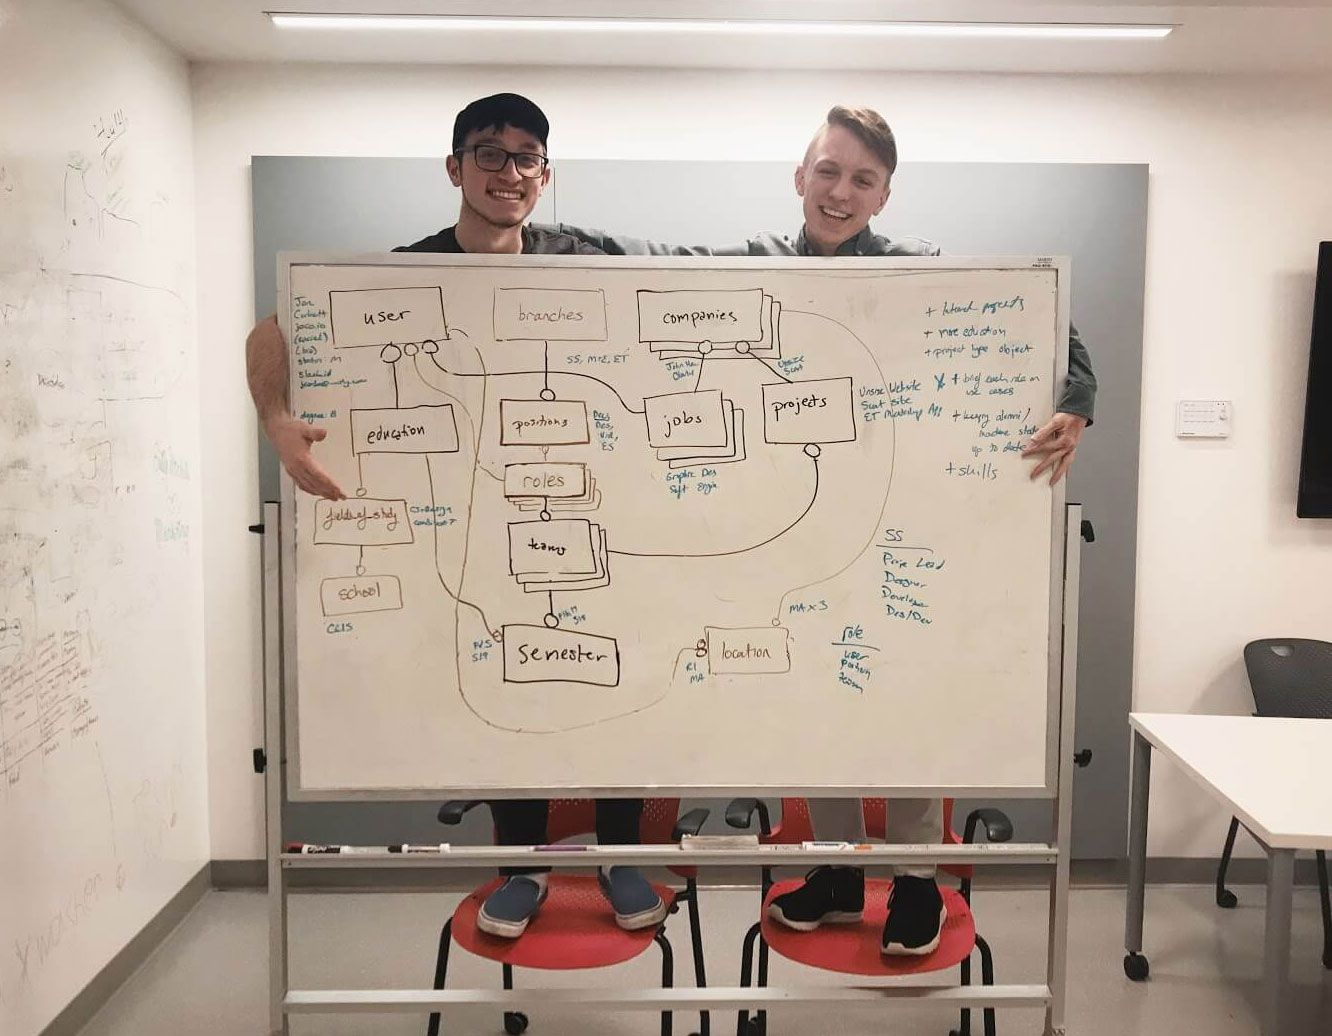 An image of Noah and I standing behind a whiteboard that features the API diagram.